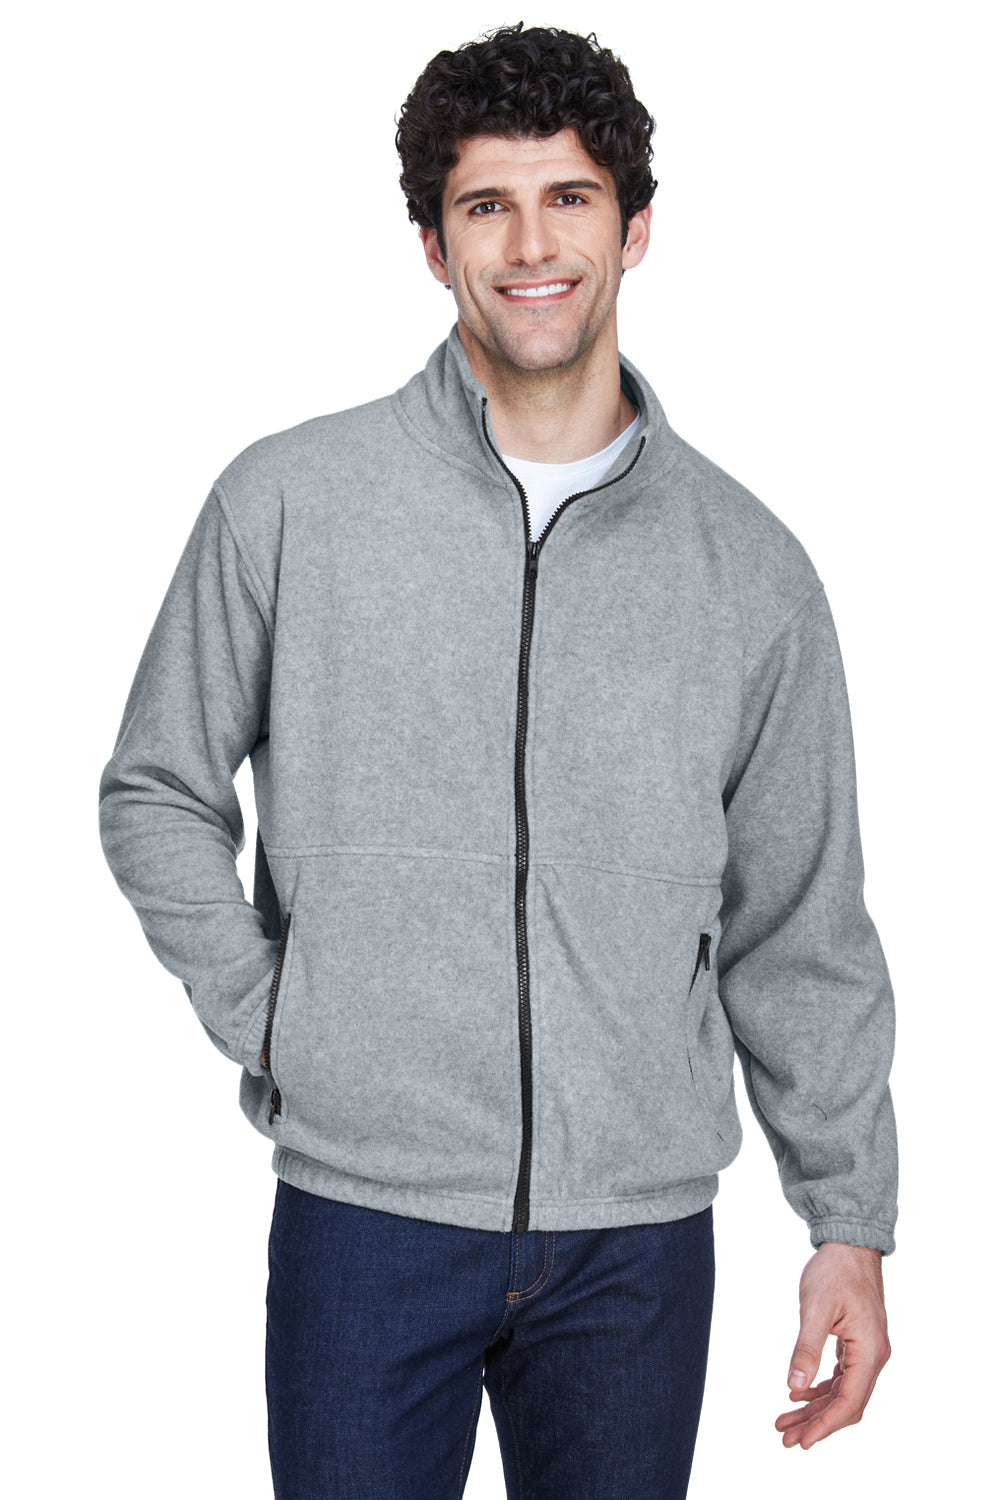 UltraClub 8485 Mens Iceberg Full Zip Fleece Jacket Heather Grey Front